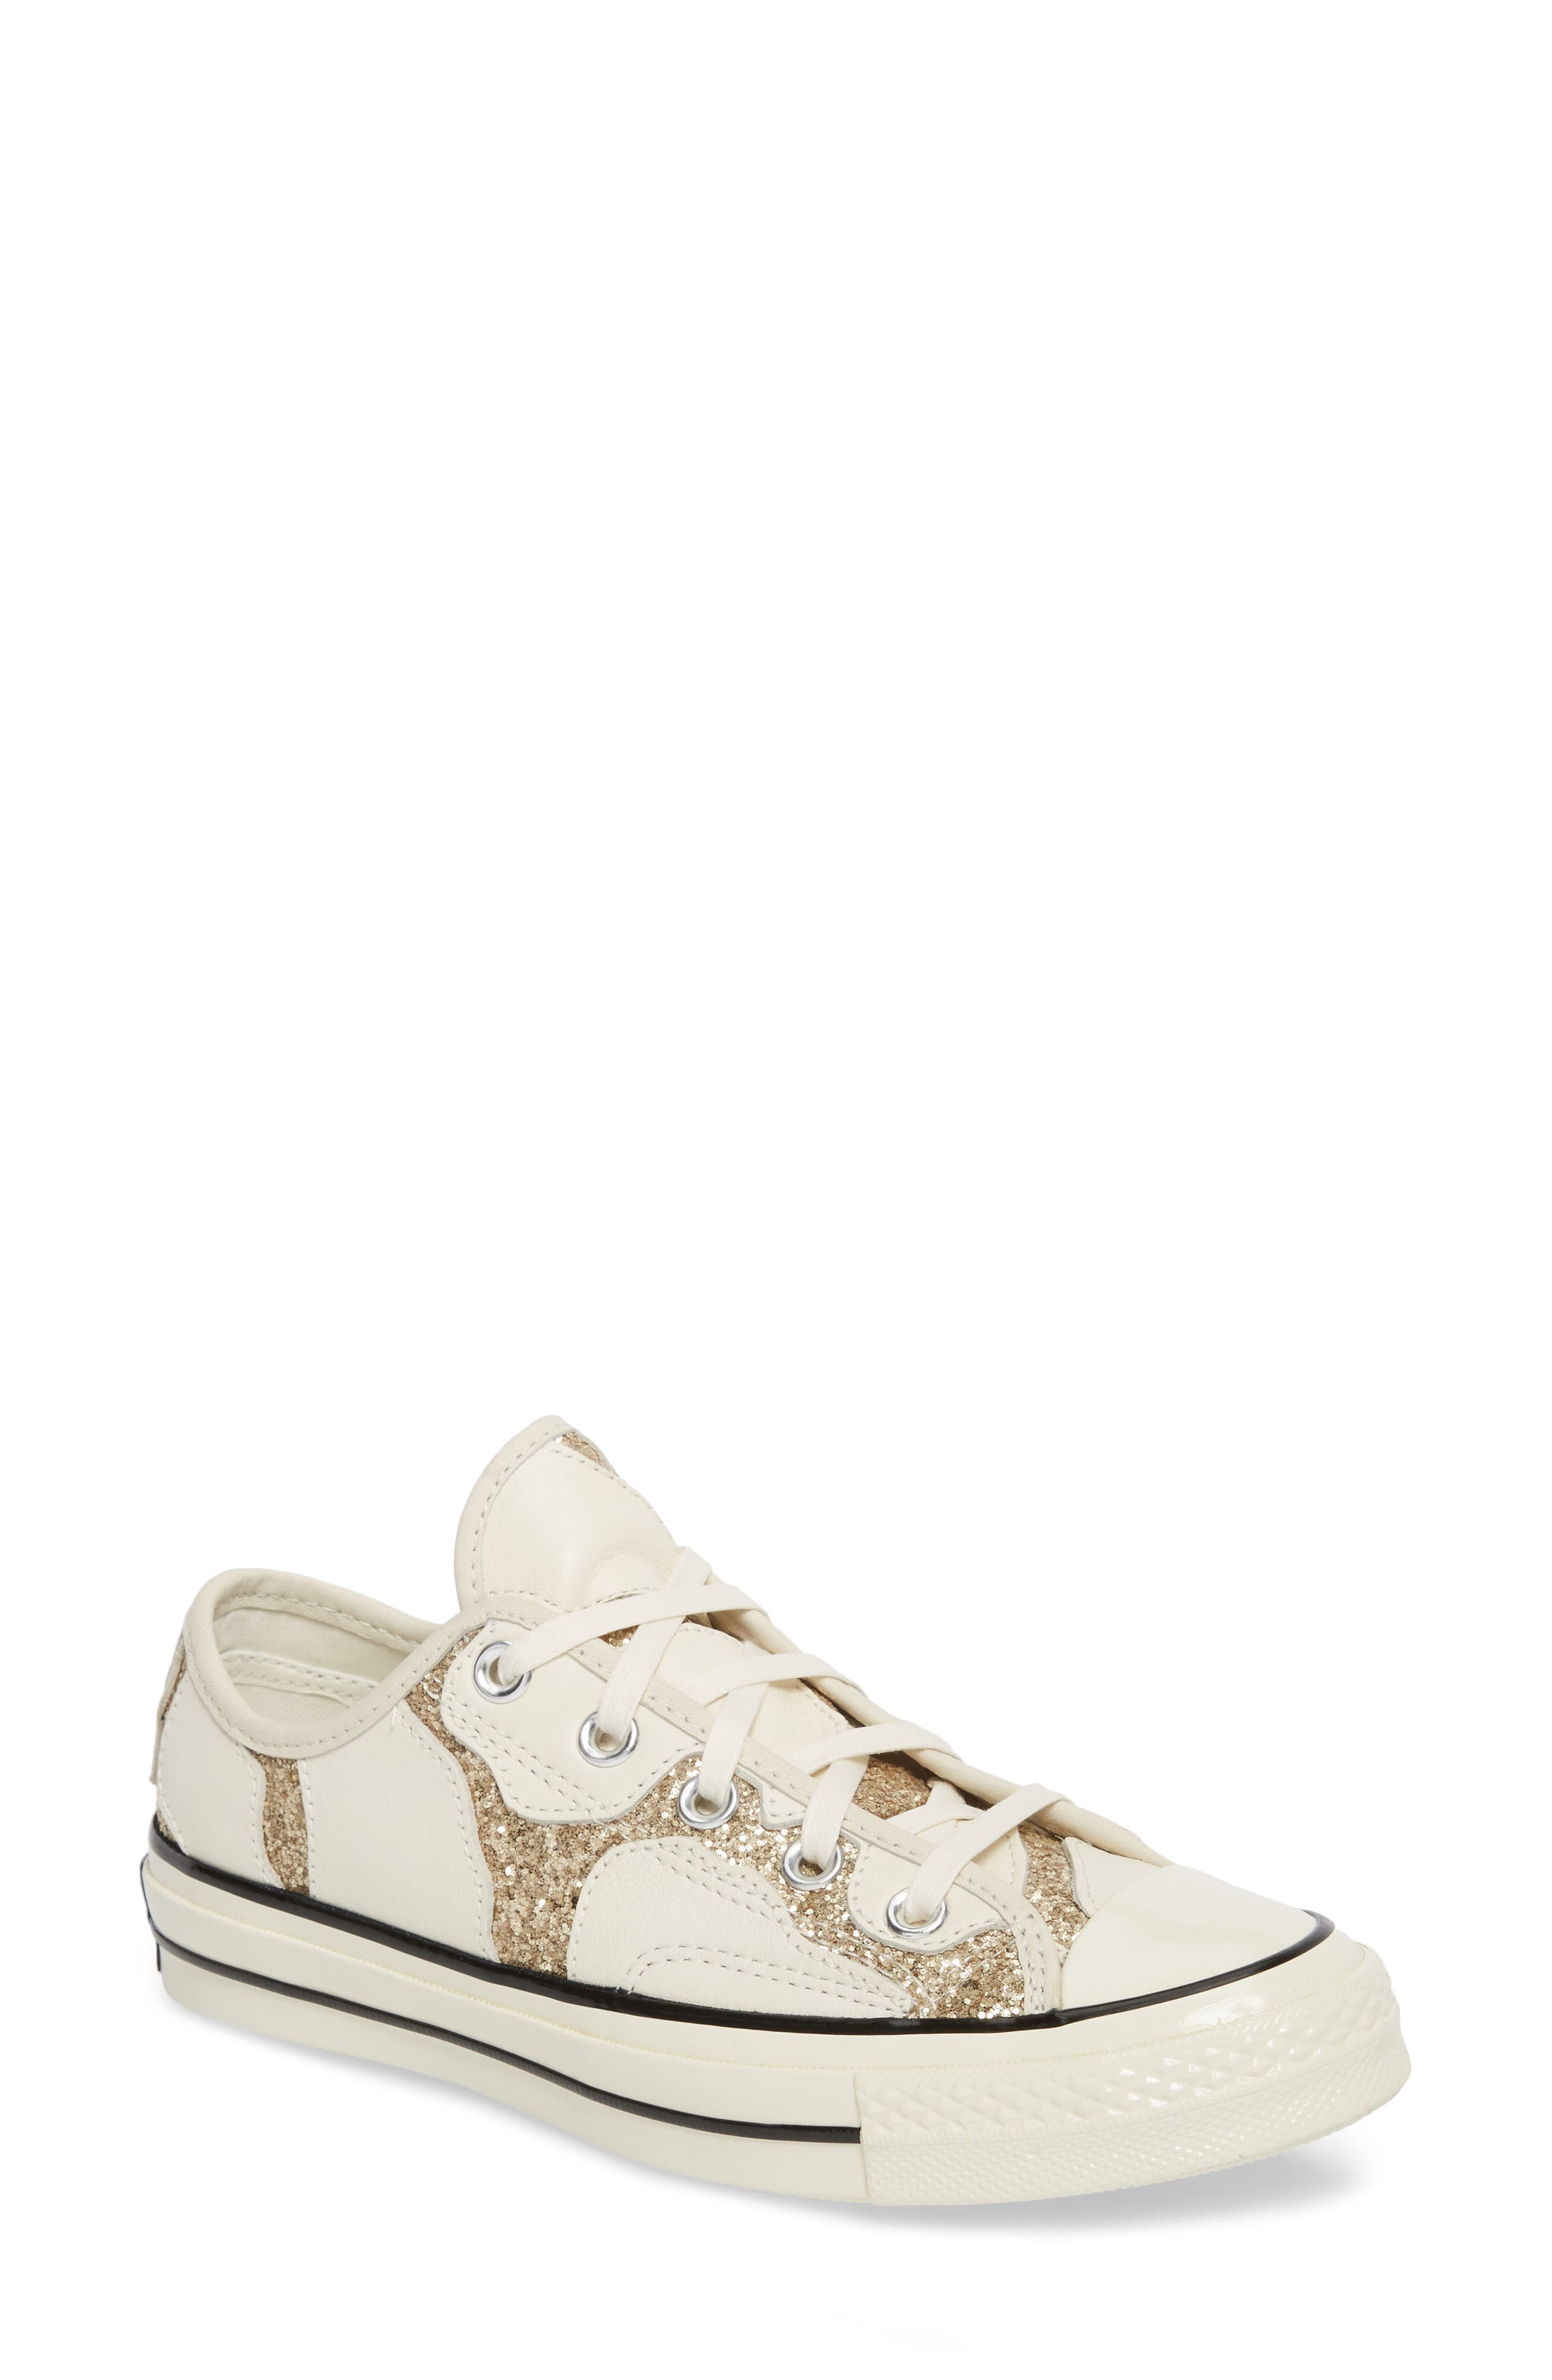 Alternate Image 1 Selected - Converse Chuck Taylor® All Star® Animal Glitter Low Top Sneaker (Women)